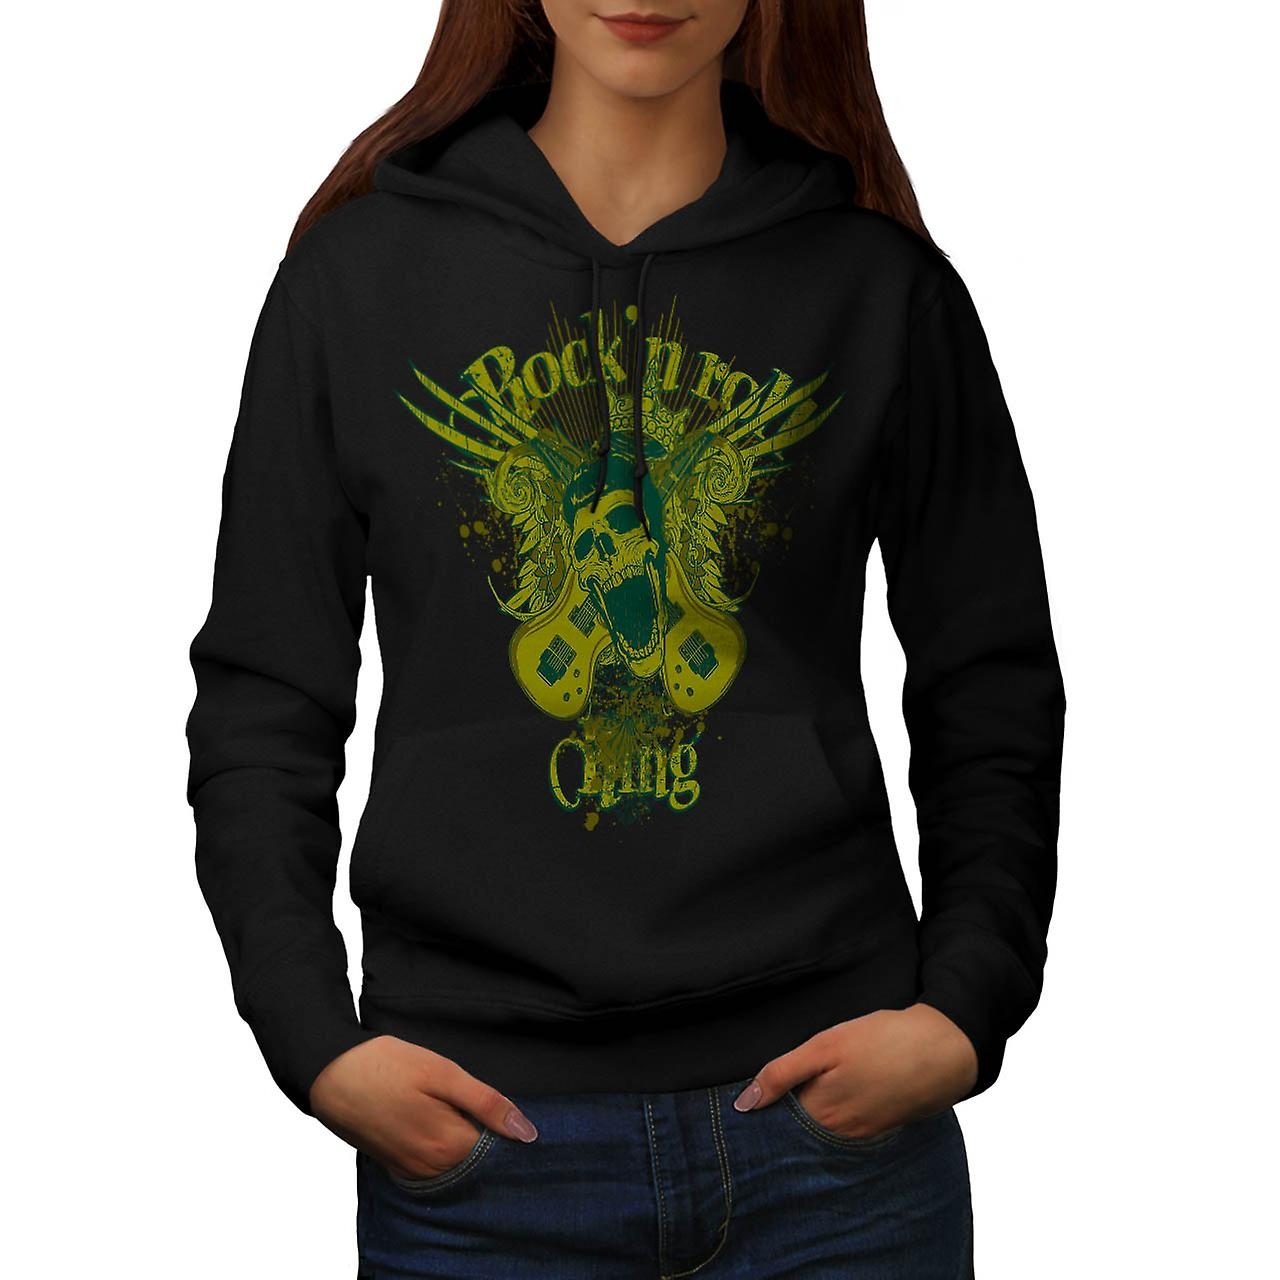 Rock and Roll King Guitar Skull Women Black Hoodie | Wellcoda